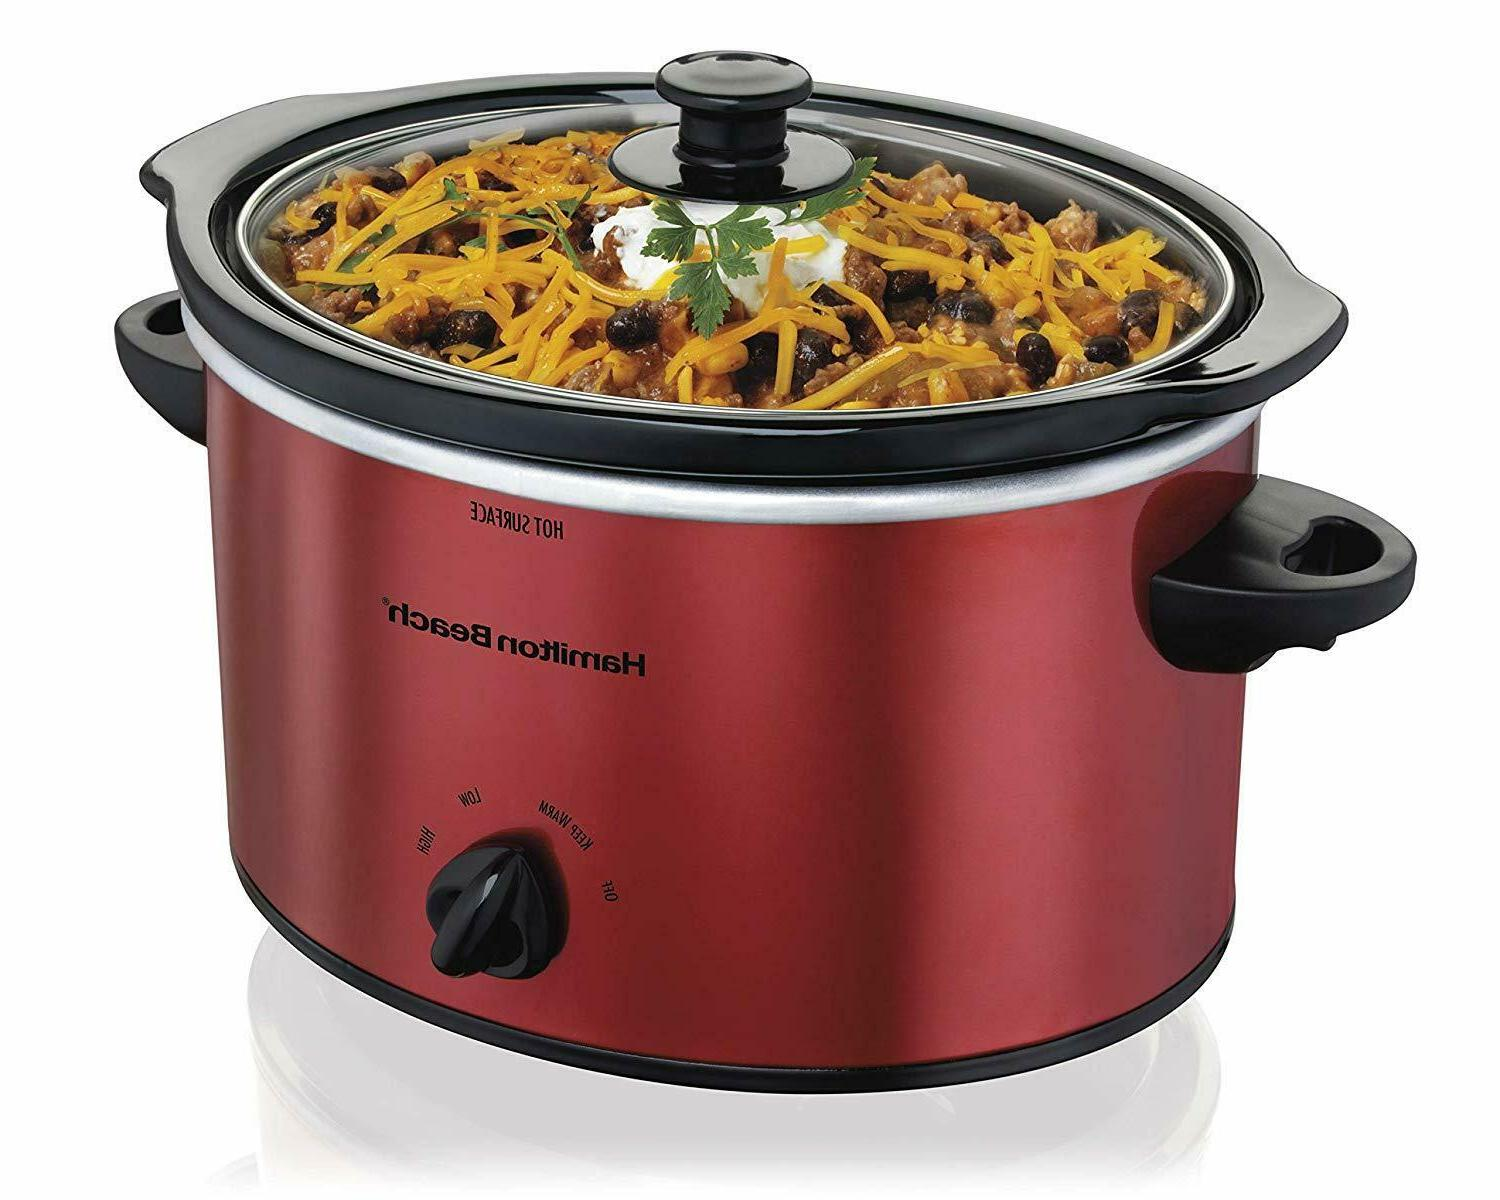 33230 3 quart slow cooker new